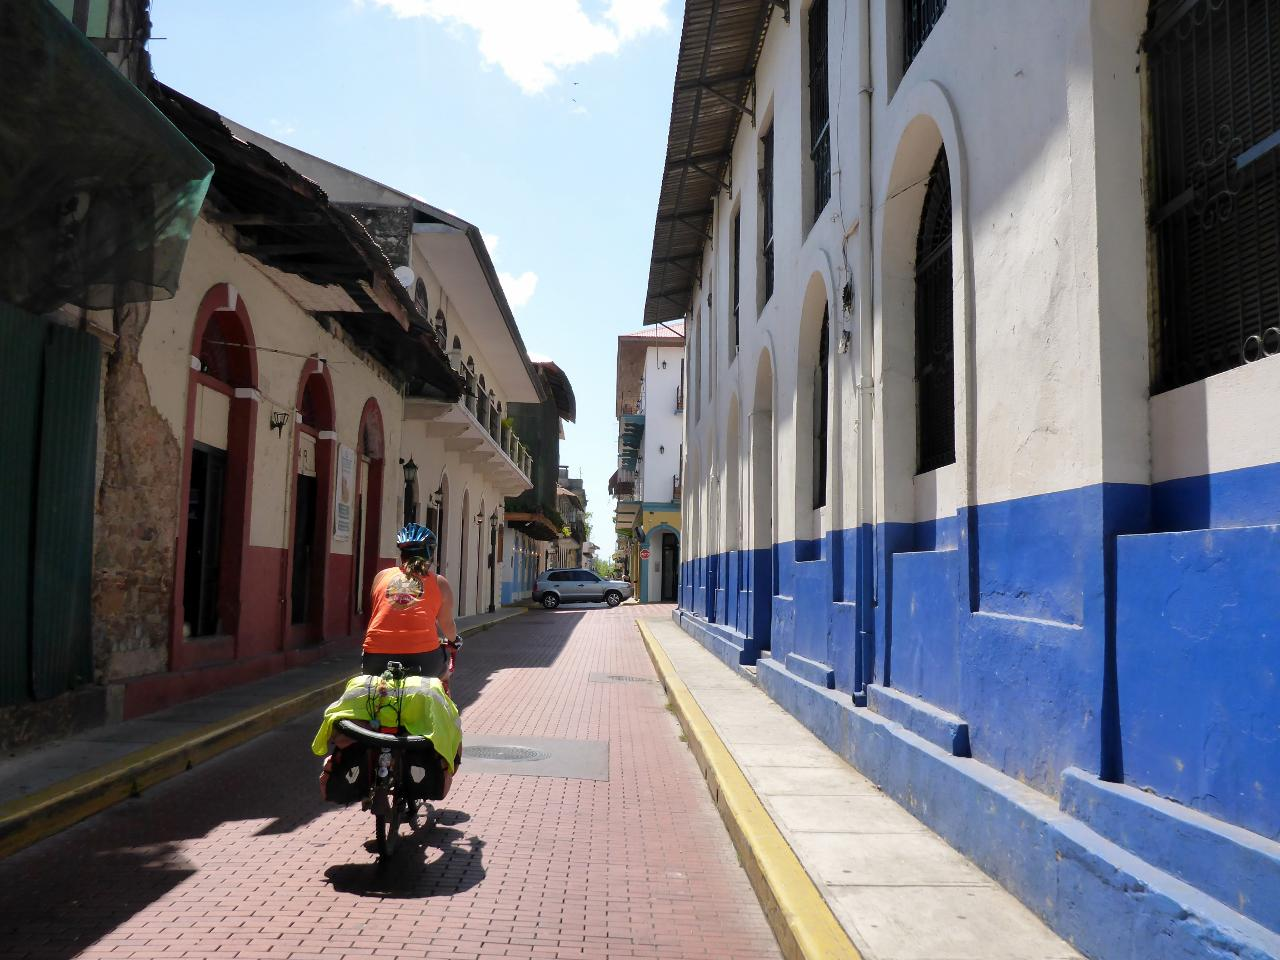 Riding through the narrow streets to find our hotel.